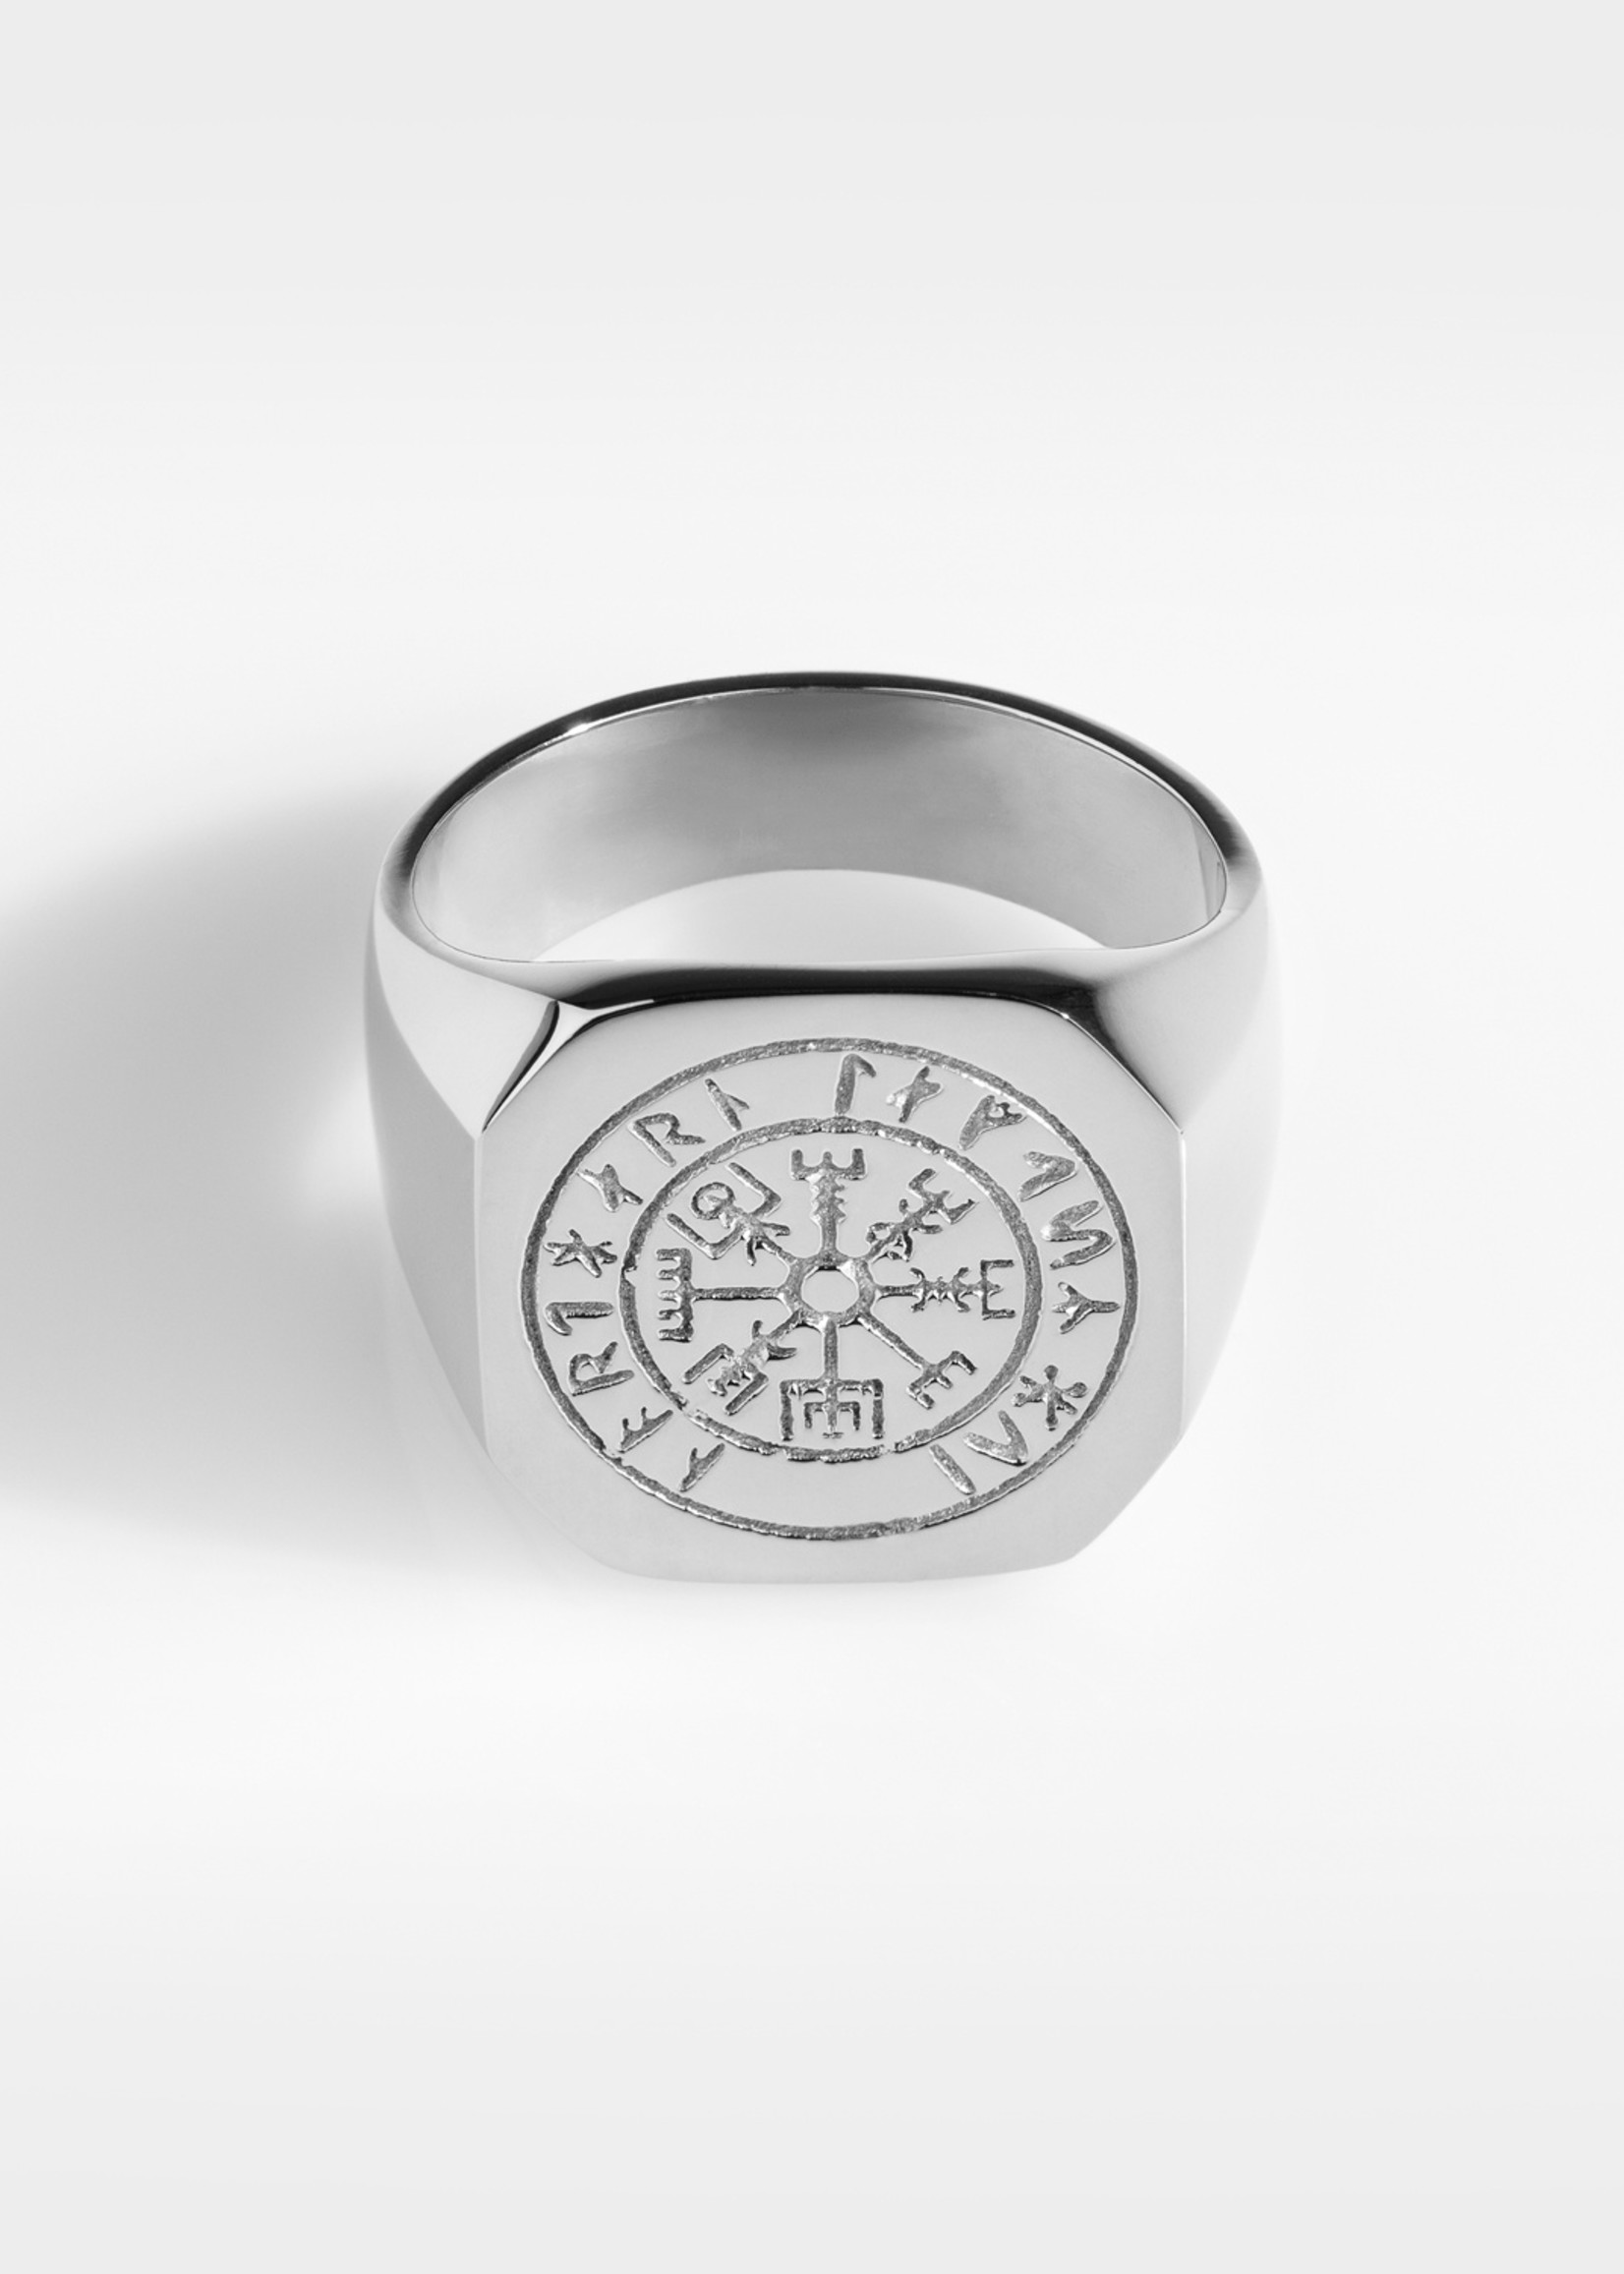 Northern Legacy vegvisir oversize signature- silver tone ring maat 21